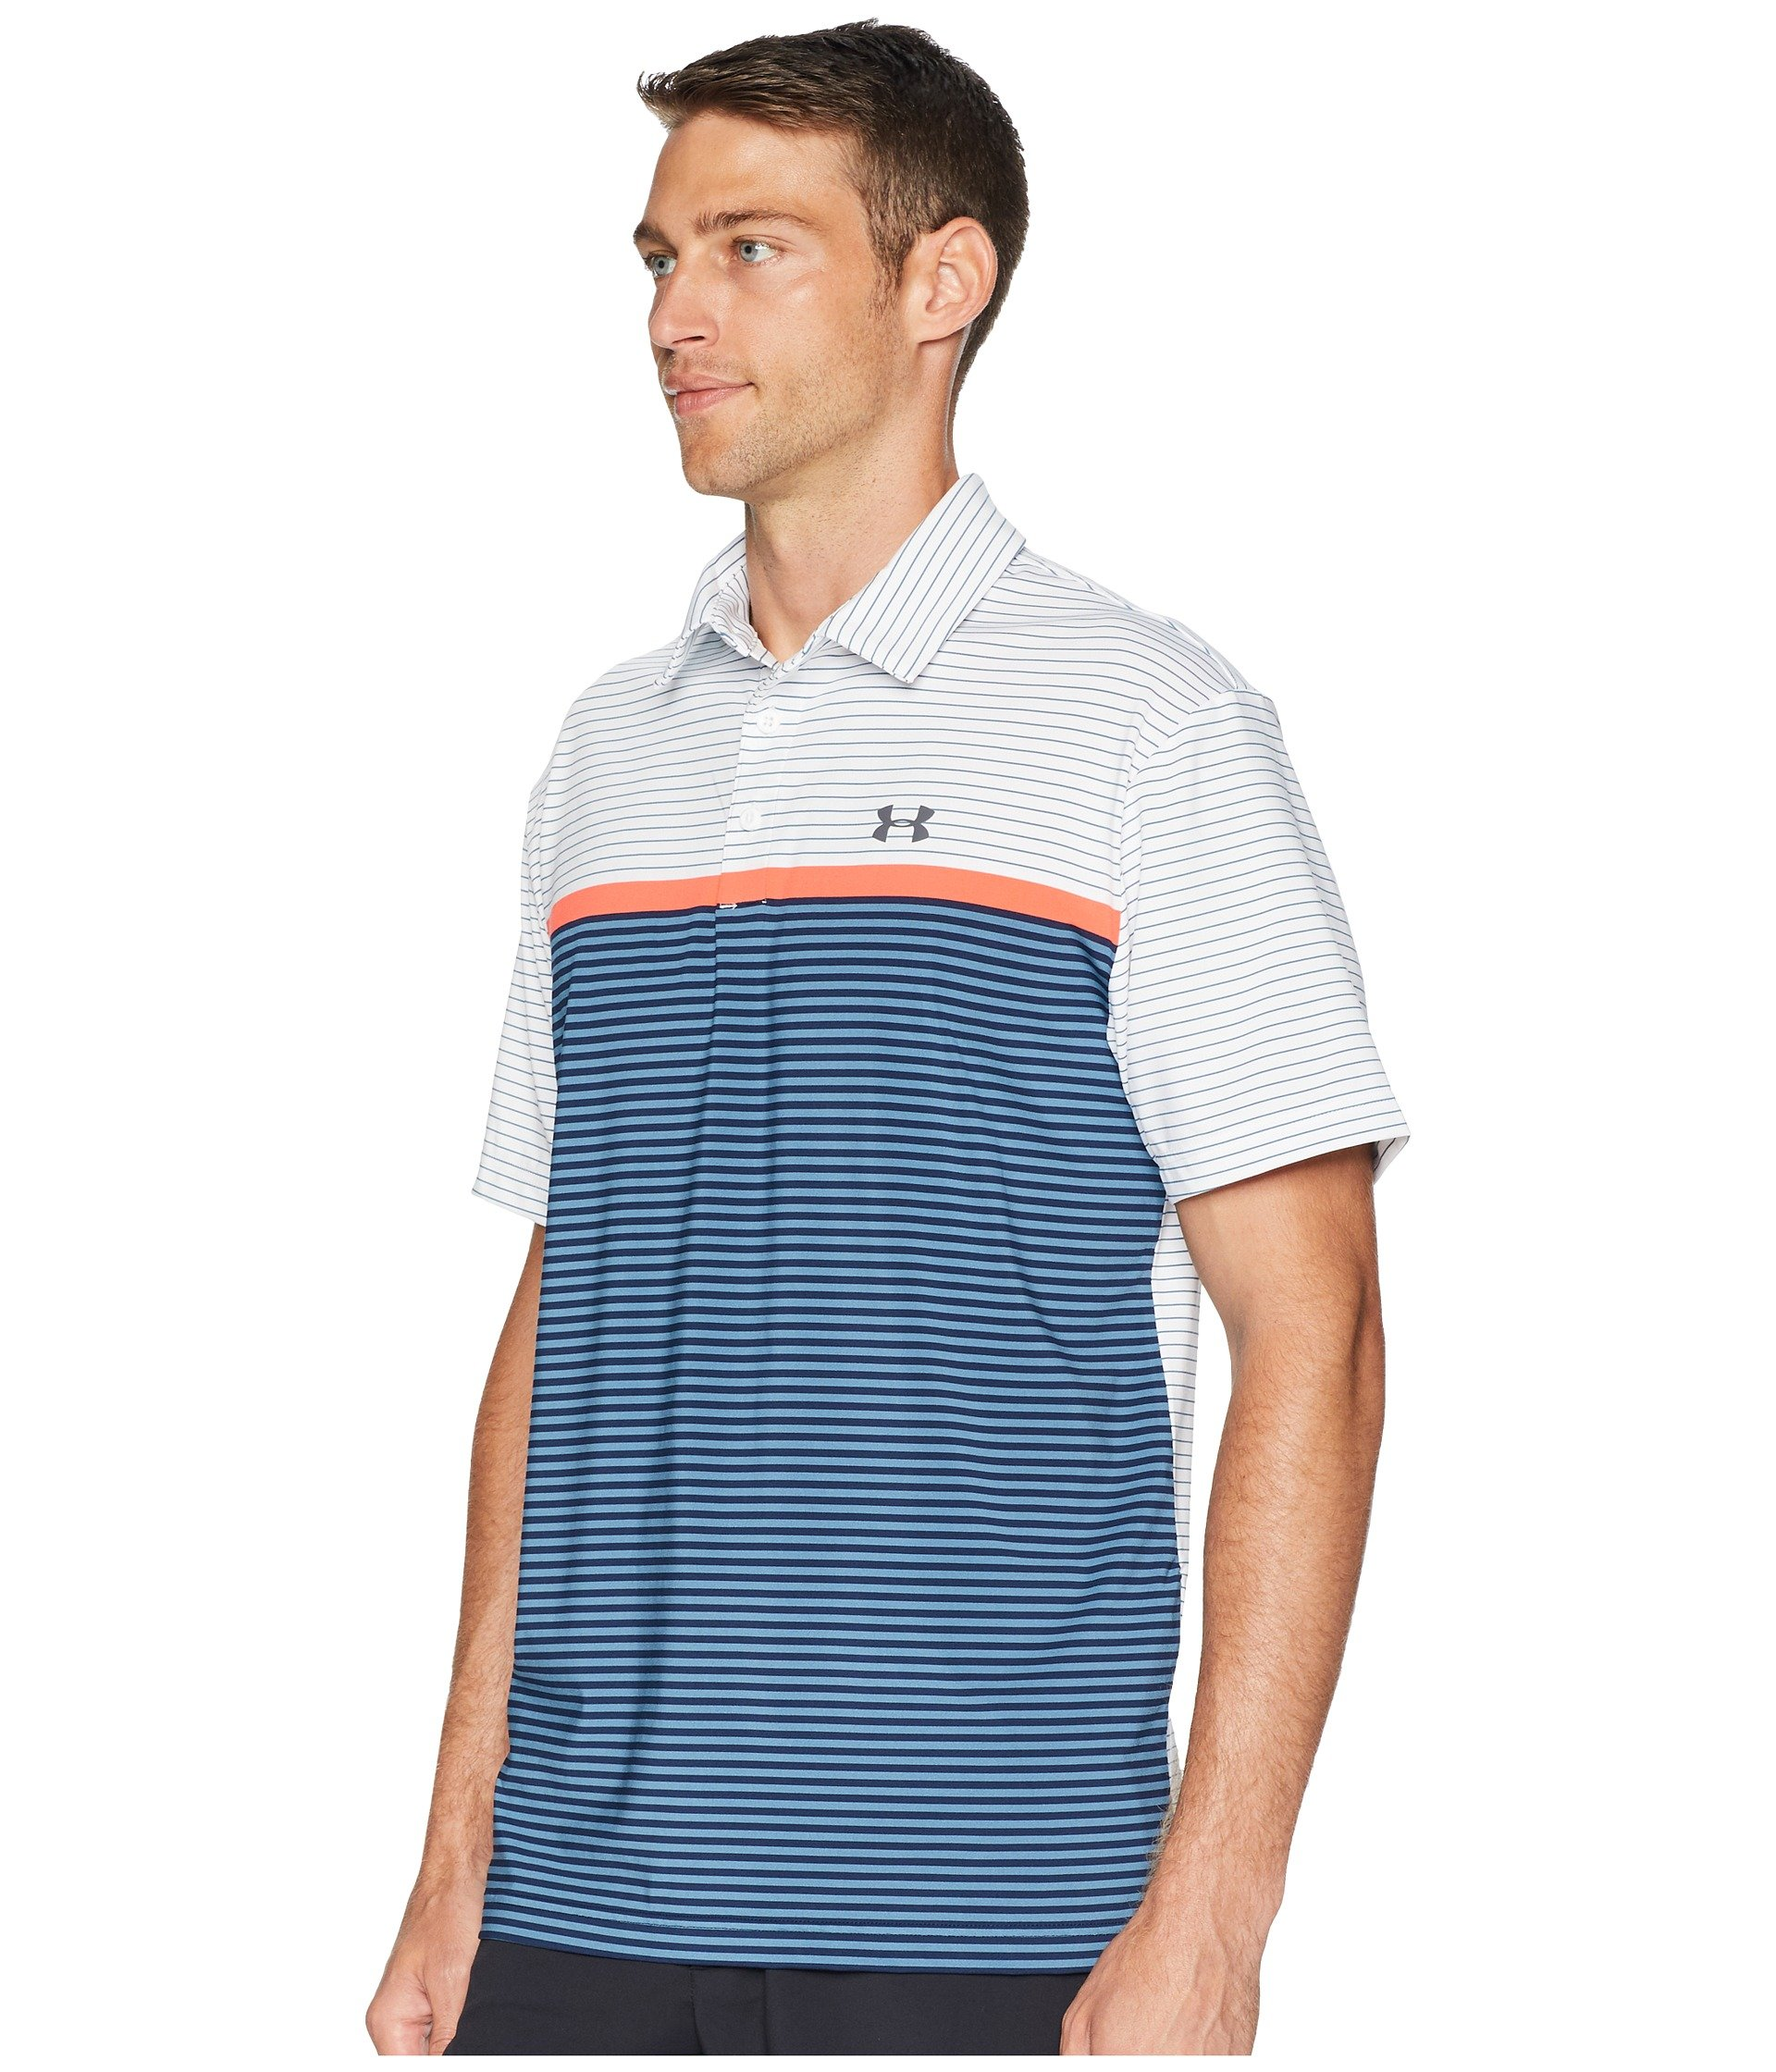 Under Armour Men's Playoff Polo, White (124)/Rhino Gray, X-Small by Under Armour (Image #3)